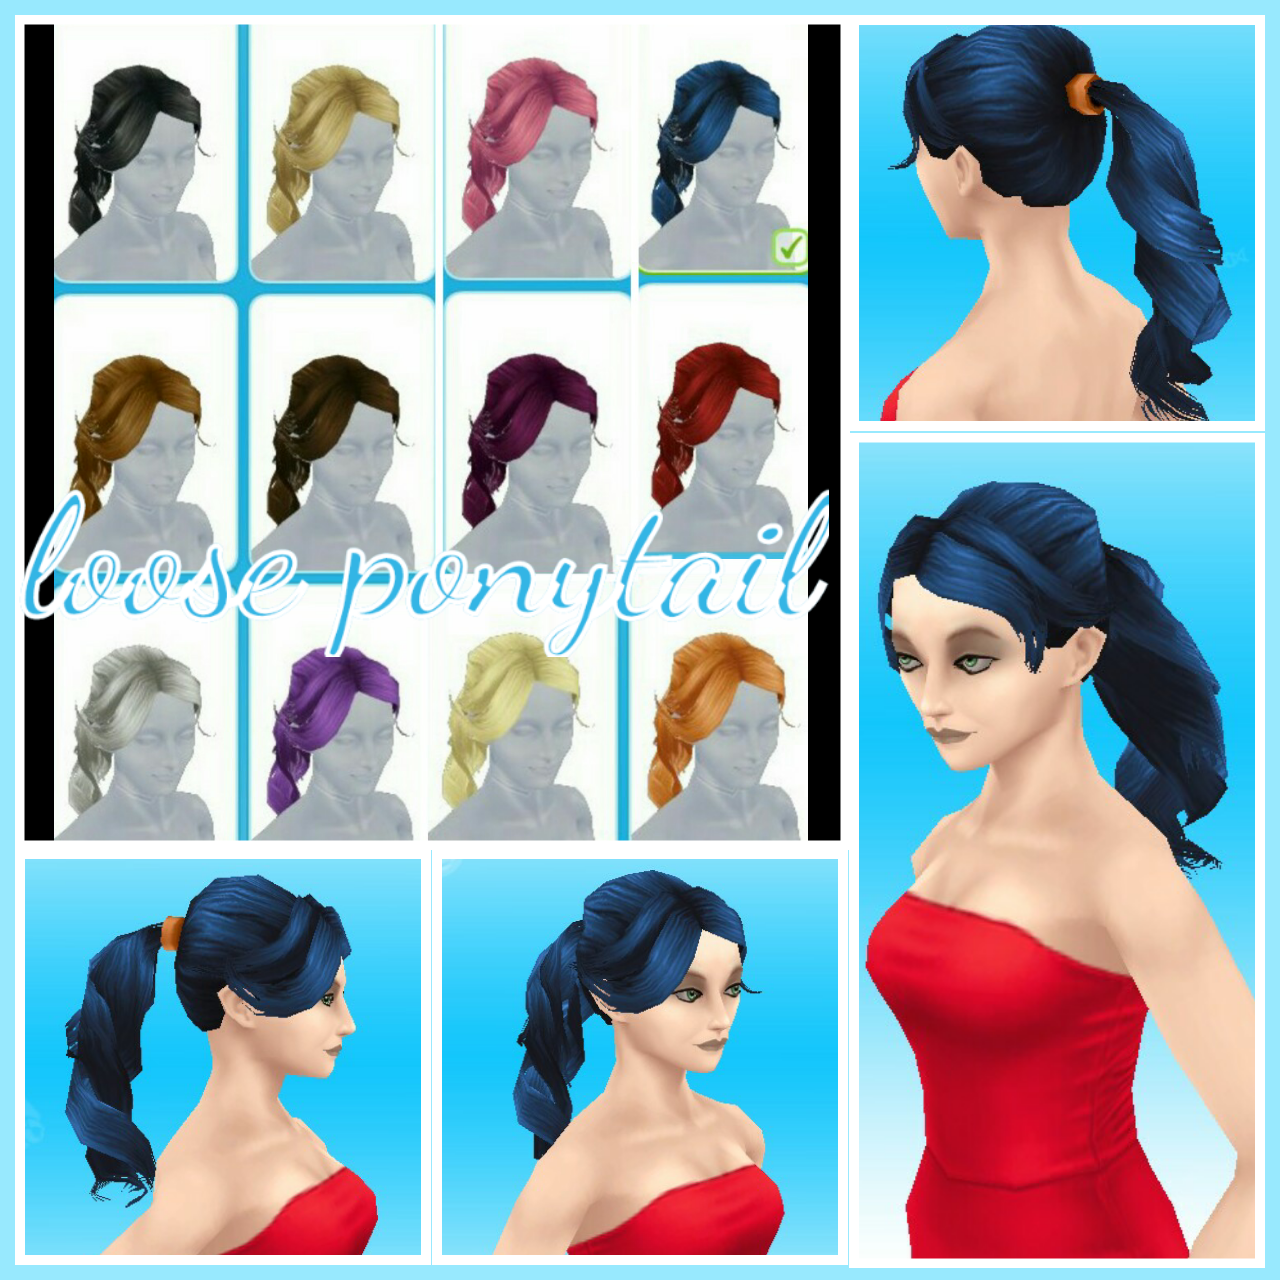 The sims freeplay long hairstyle - Image